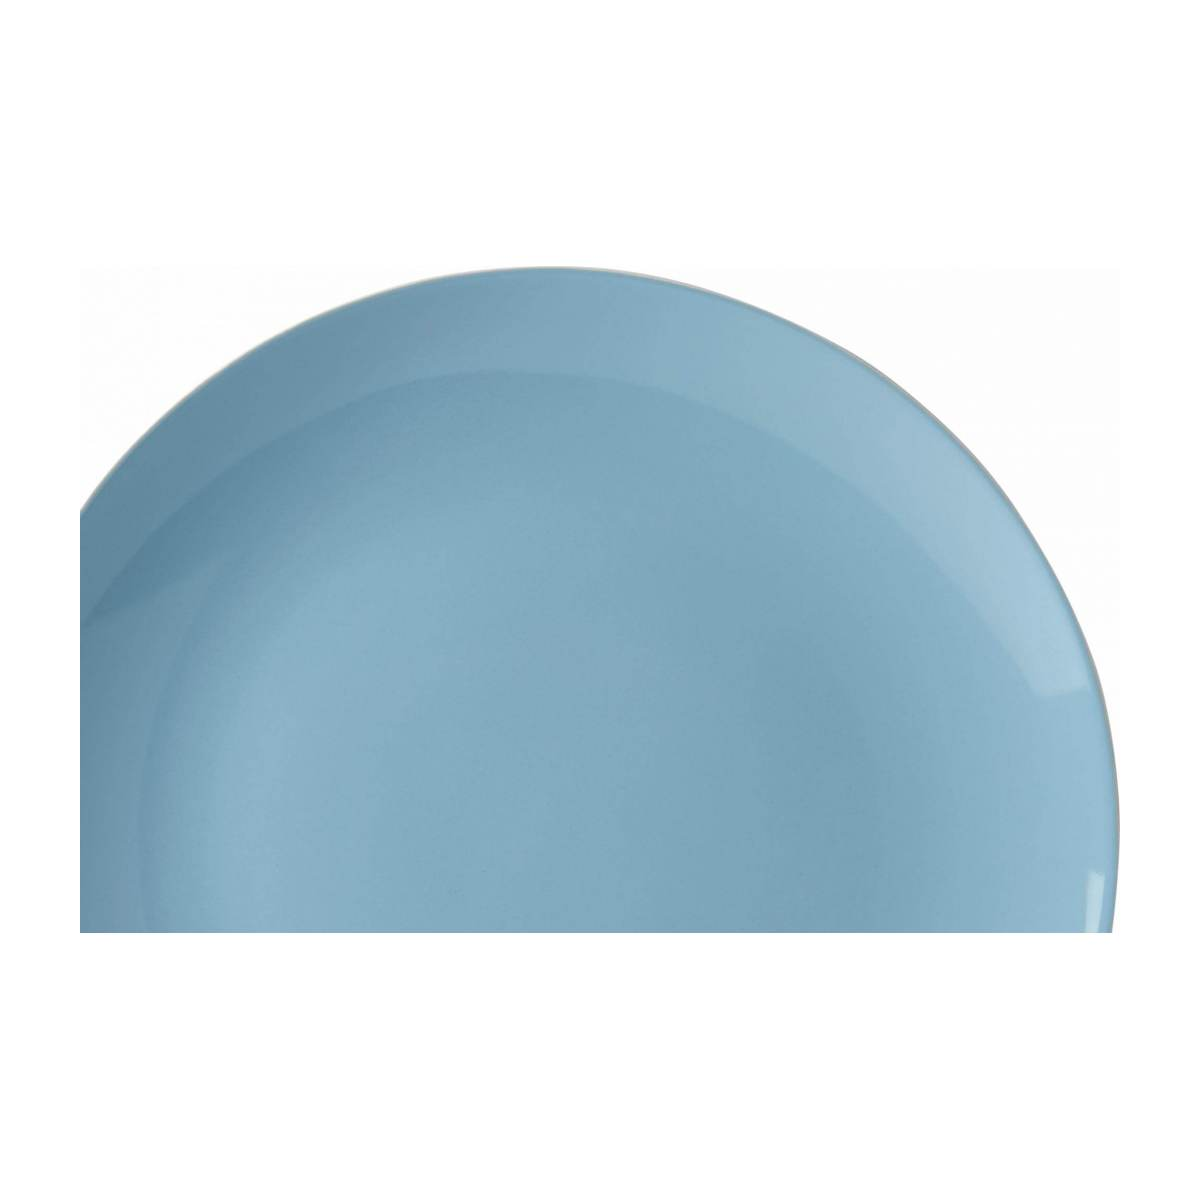 Serving dish made of sandstone, white and blue n°3